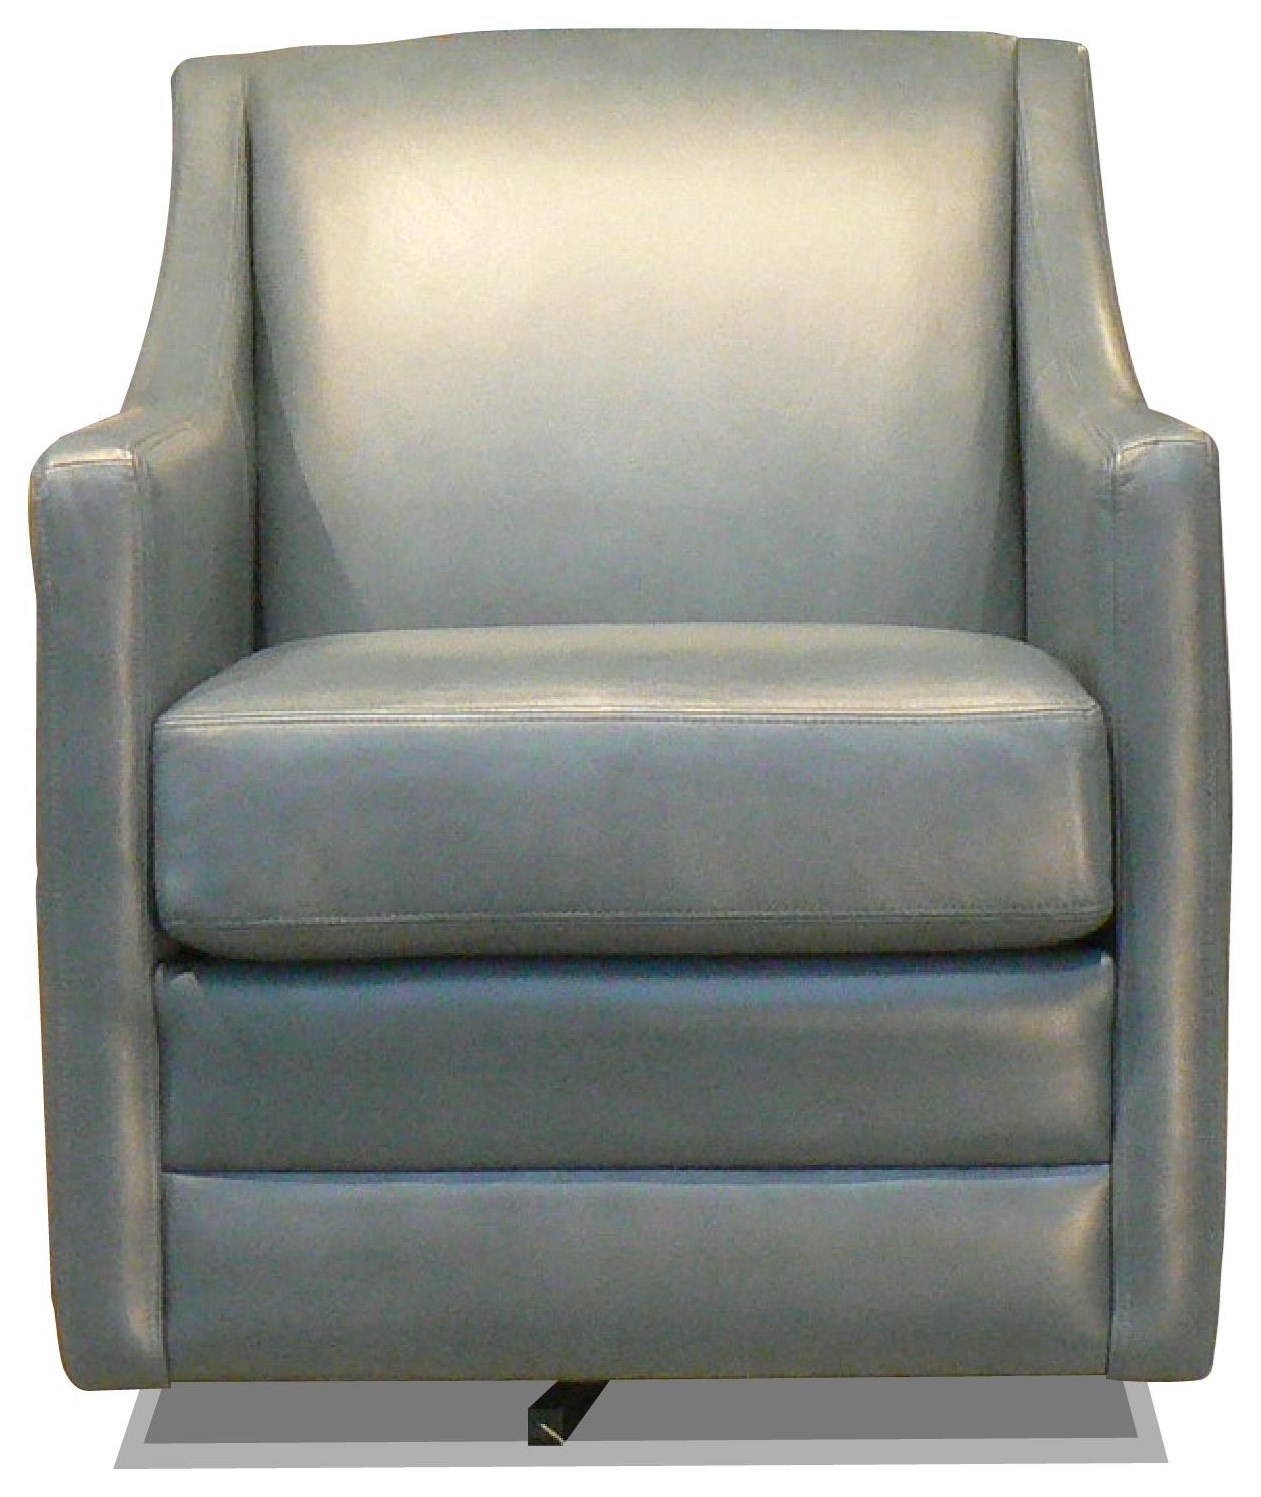 Tracy Leather Swivel Chair by Taelor Designs at Bennett's Furniture and Mattresses